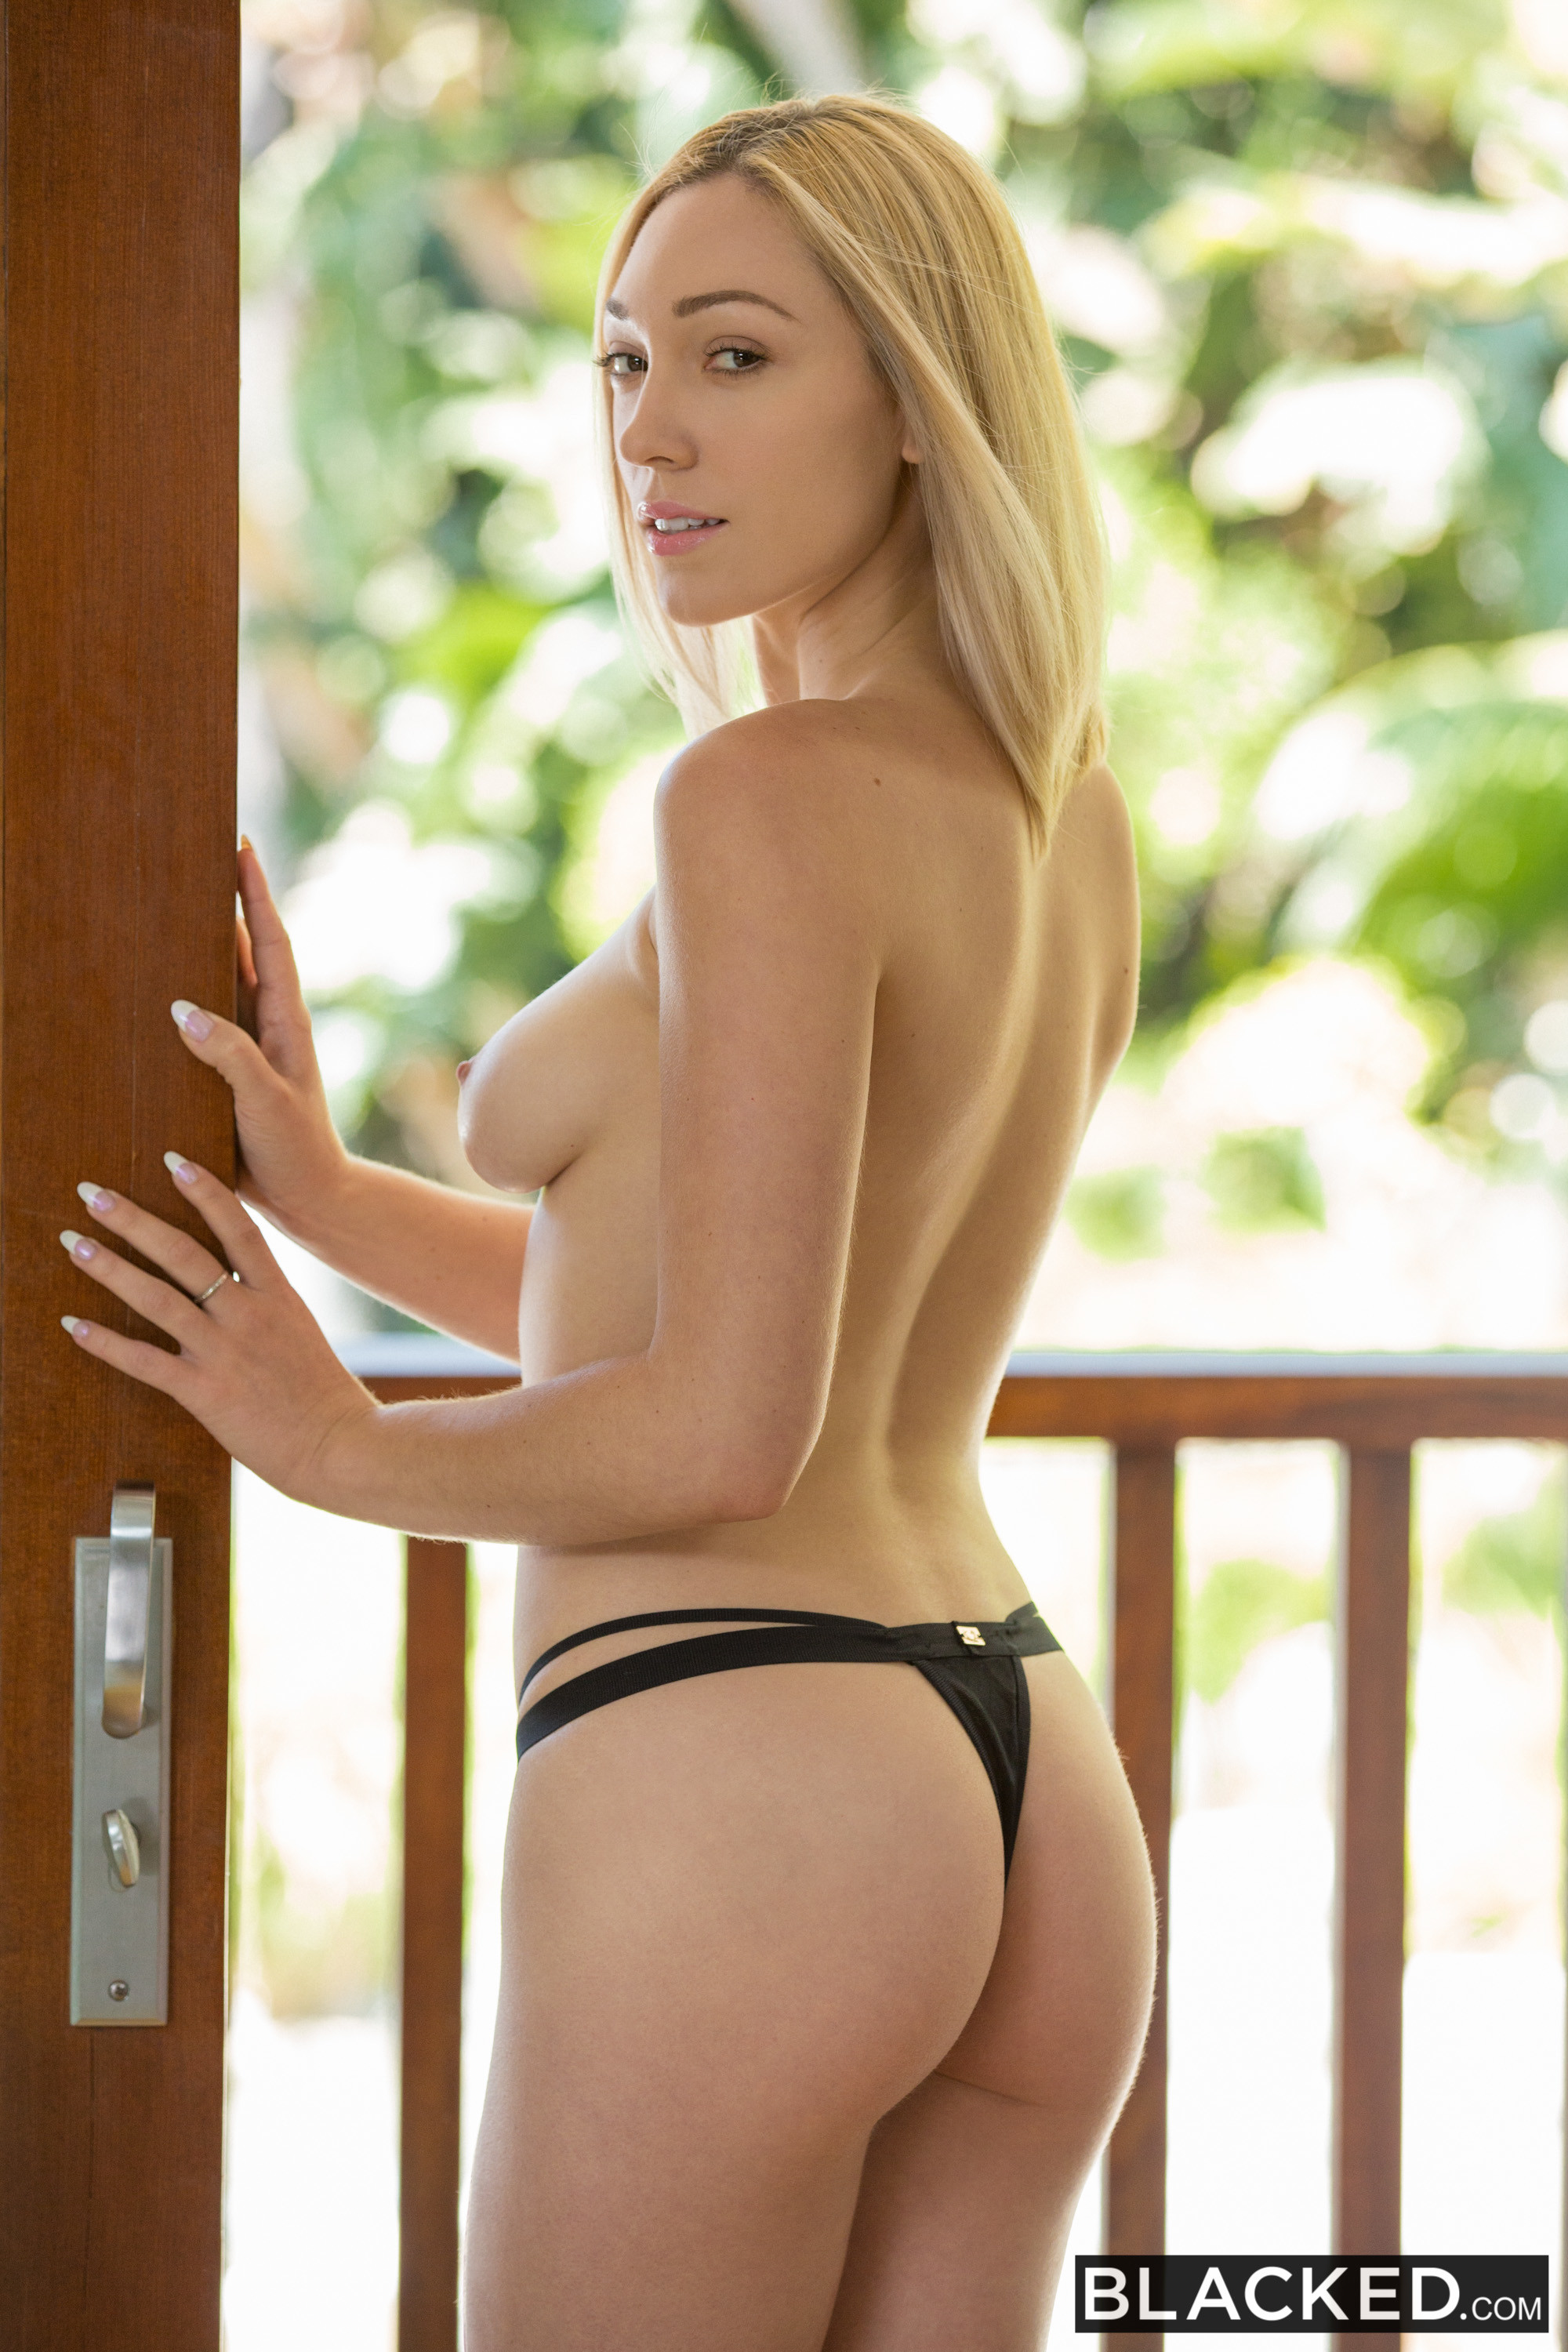 lily-labeau-blonde-nude-black-lingerie-blacked-07